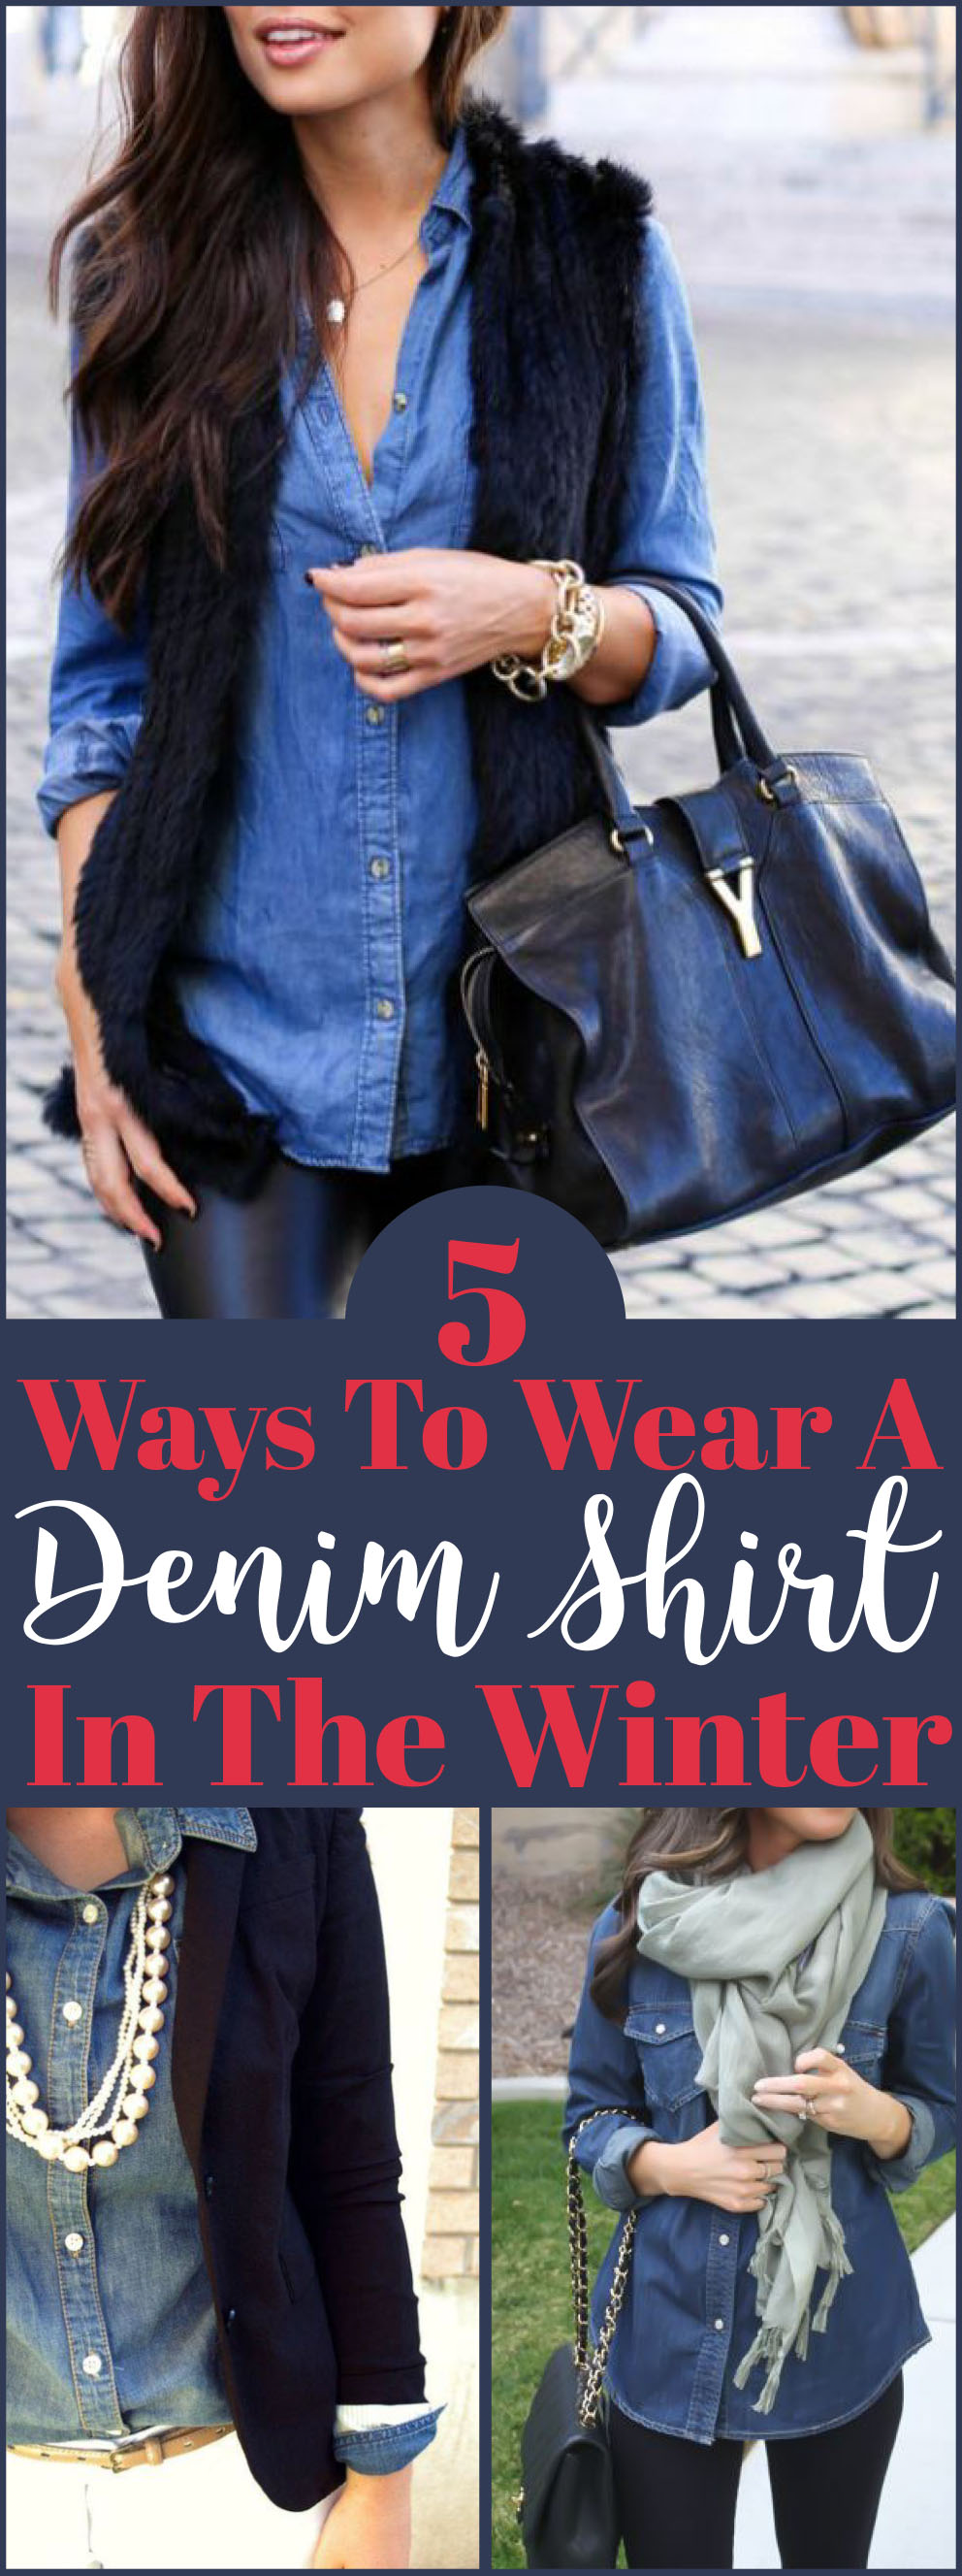 5 Ways To Wear A Denim Shirt In The Winter - Society19